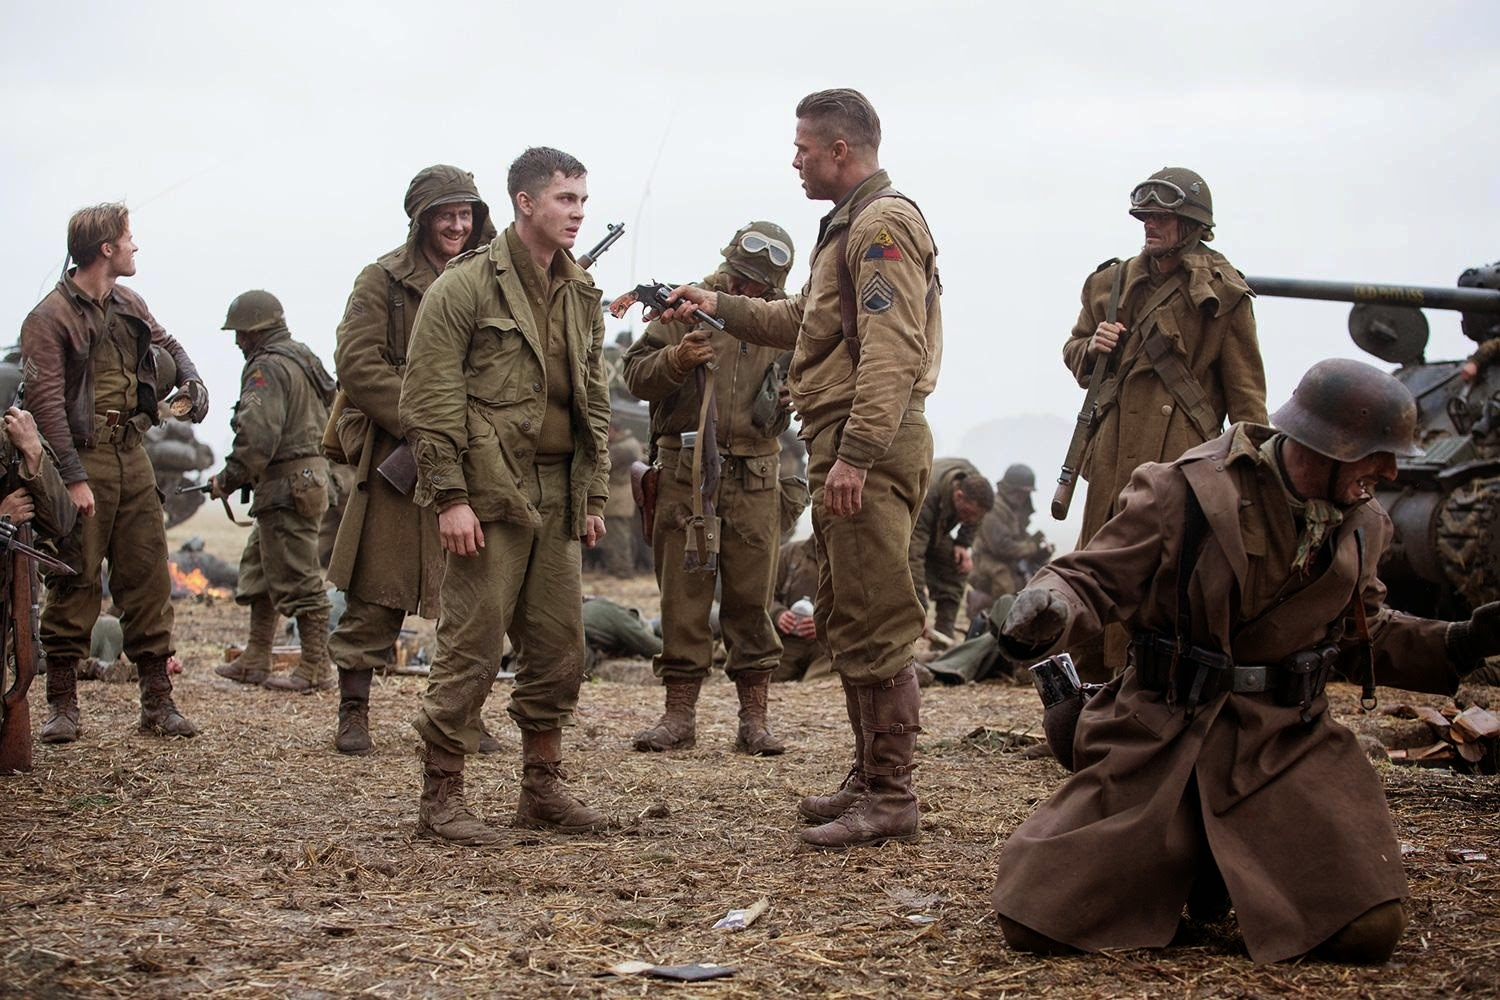 Fury: Brad Pitt & Logan Lerman | A Constantly Racing Mind